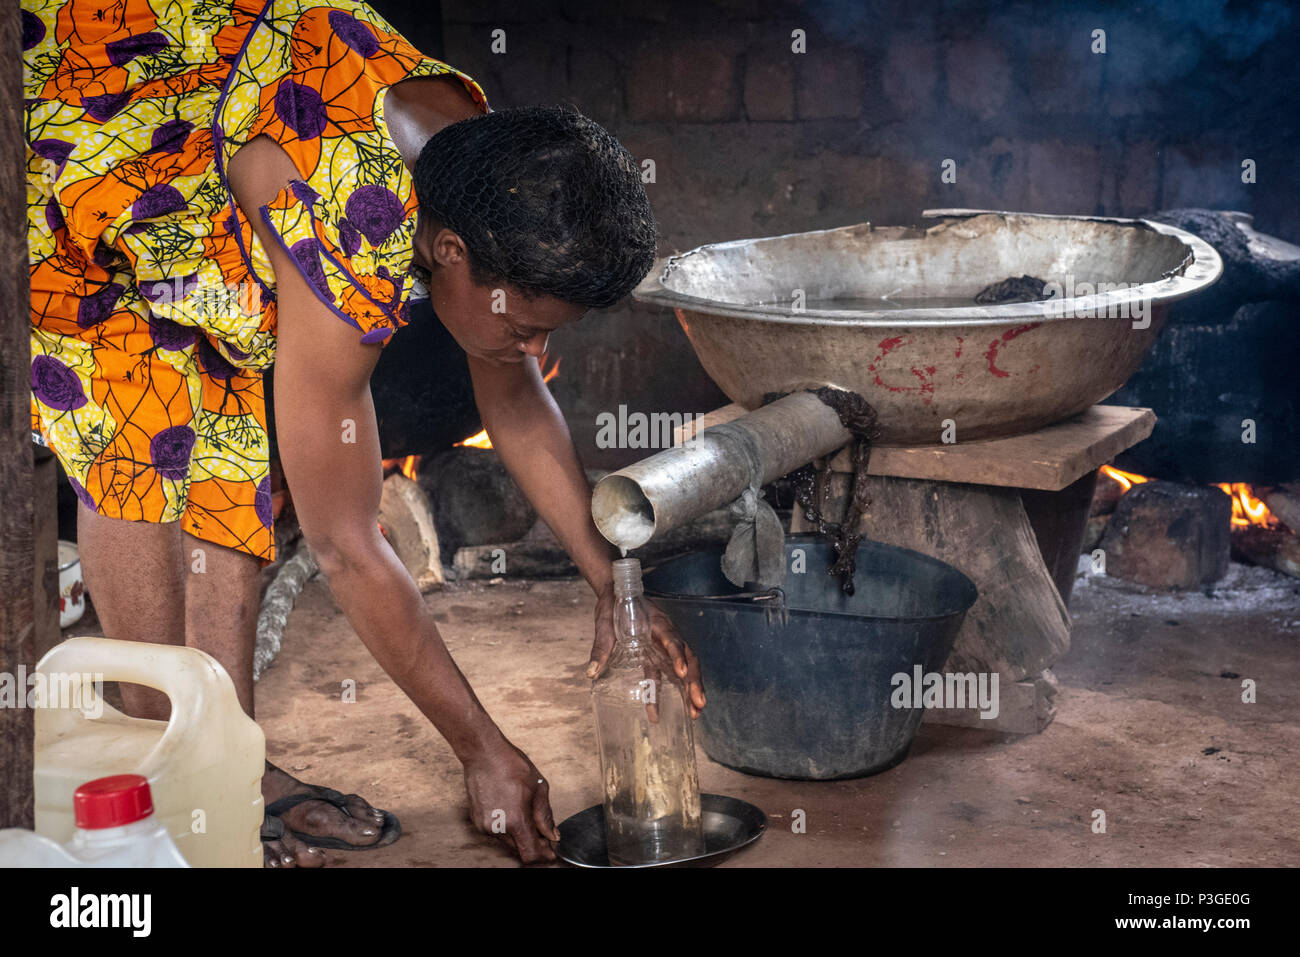 making local moonshine or liquor with homemade still Awae, Cameroon, - Stock Image